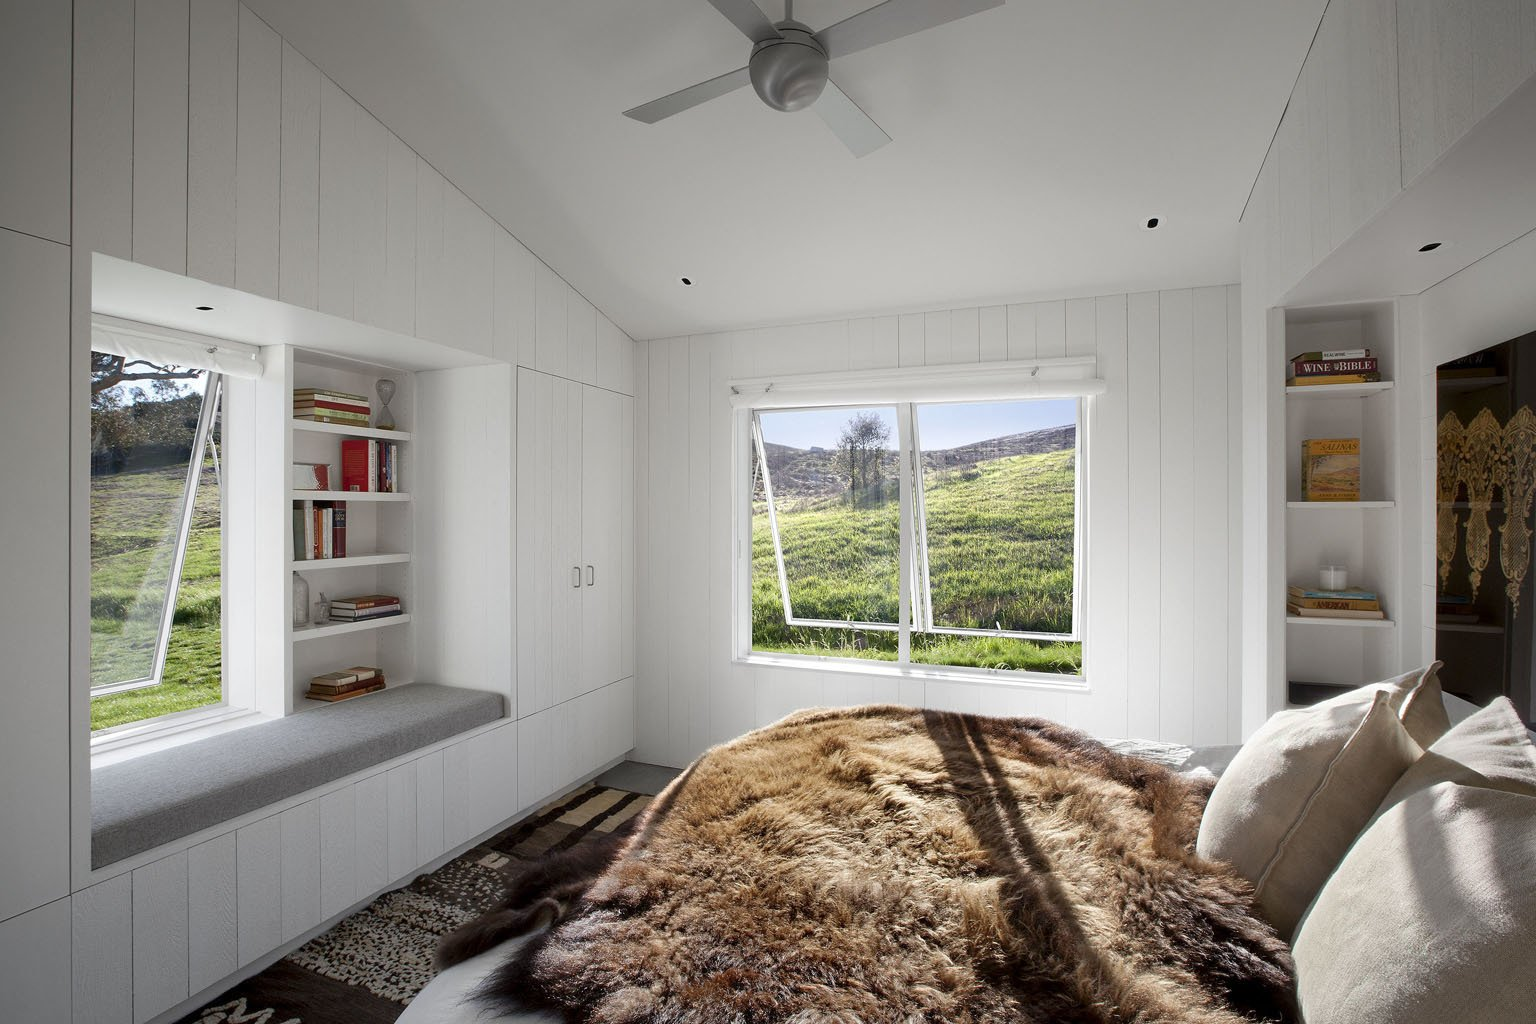 The overall design objective was to create a home that used the surrounding landscape as a dominant feature. Blomberg Window Systems panes open the master bedroom to the outdoors.  A LEED Platinum Family Home Takes the Place of an Abandoned California Farmhouse  by Kelly Dawson